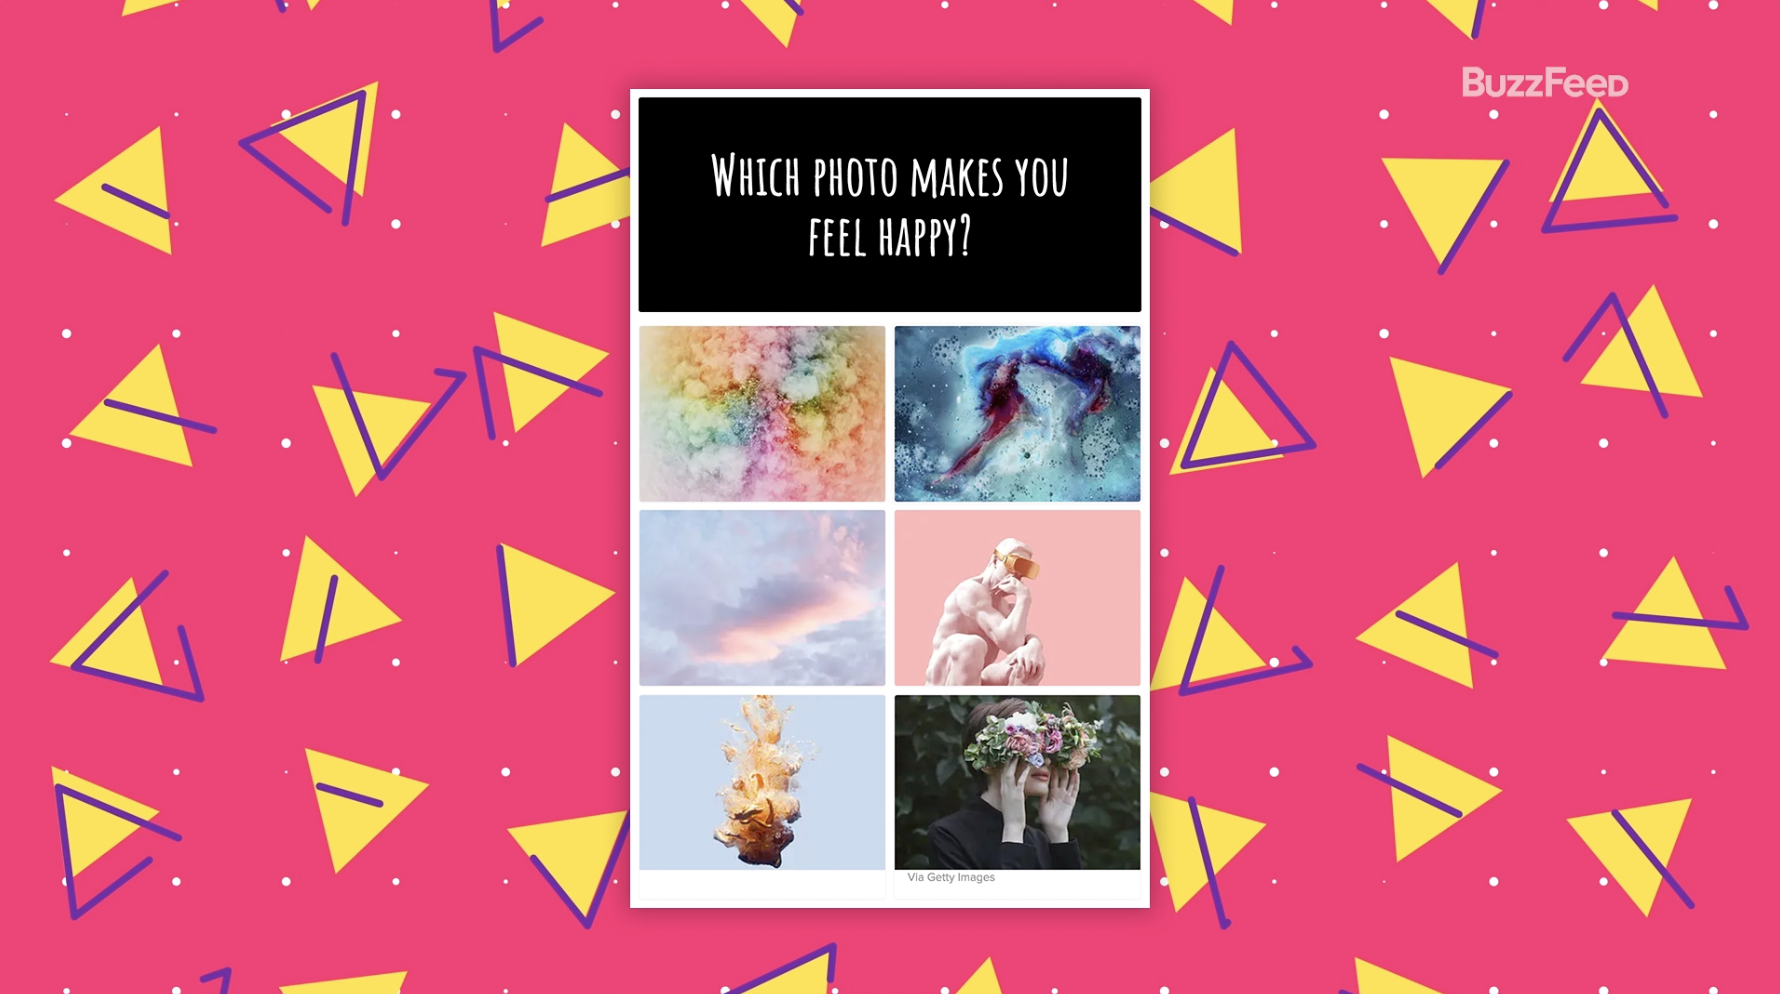 """First question from the aesthetics quiz, """"Which photo makes you feel happy?"""""""